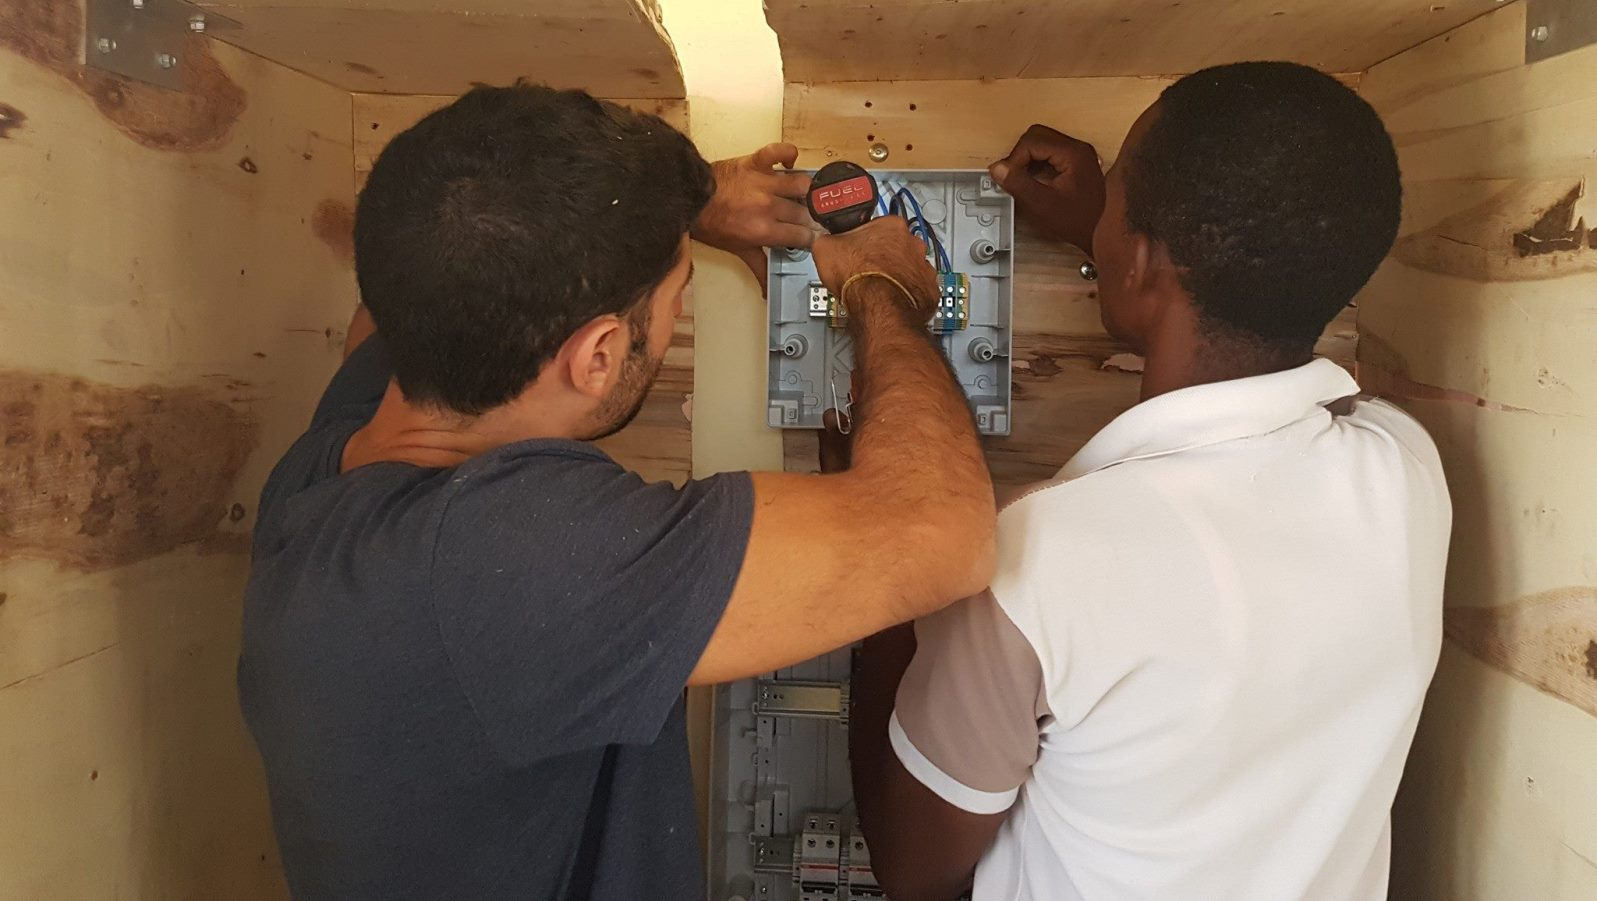 EwB TAU member Raz Cohen working with a Minjingu resident to install the solar generator. Photo via Facebook